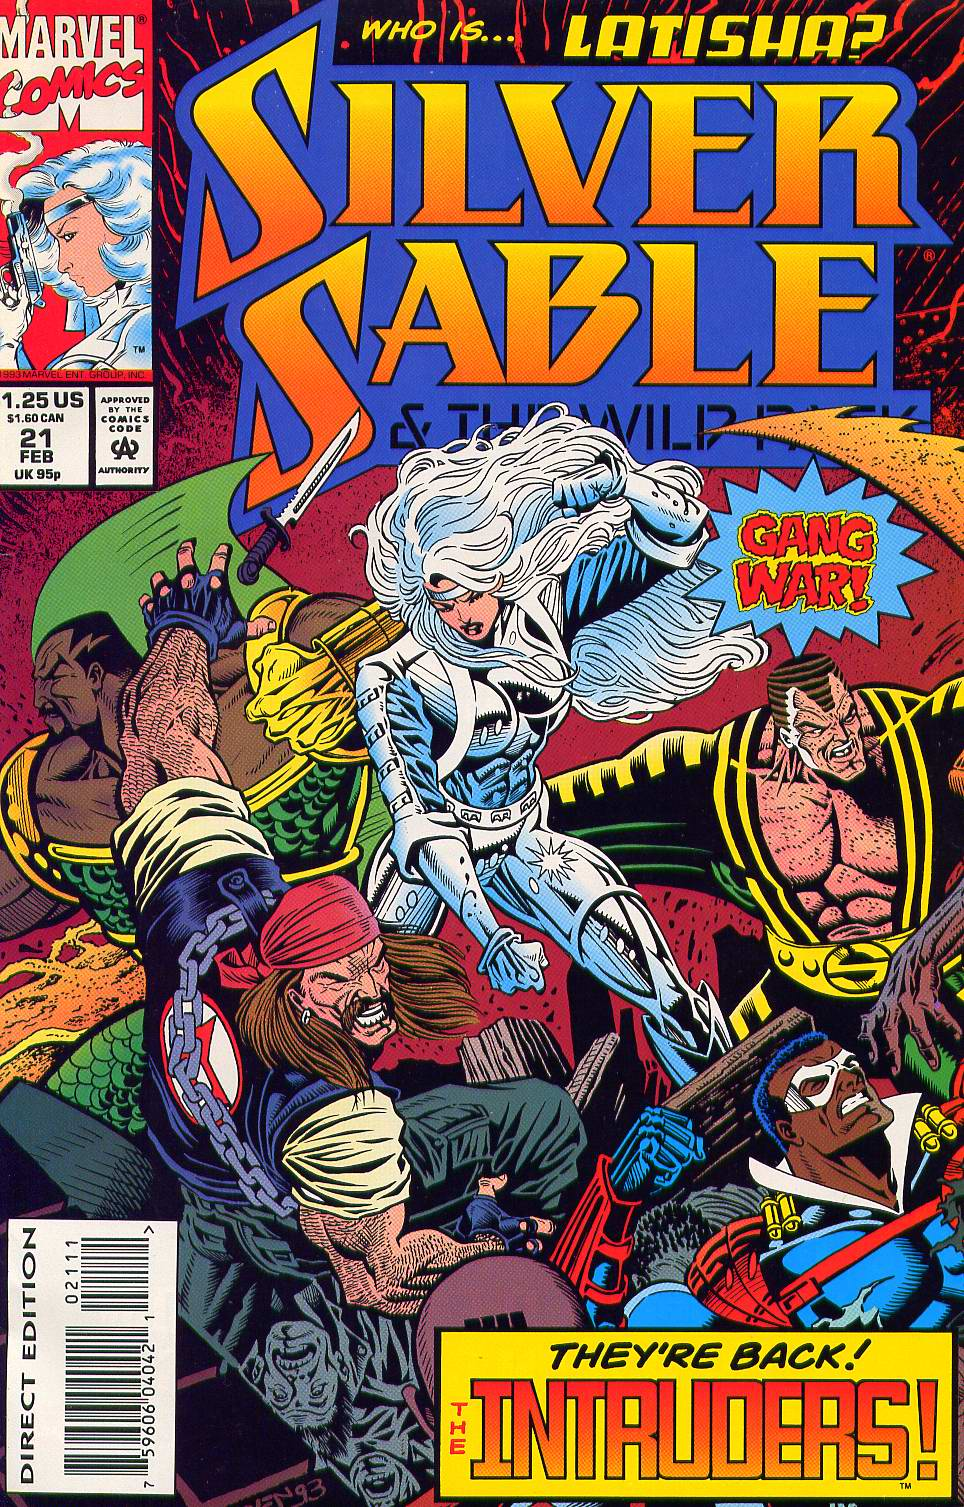 Read online Silver Sable and the Wild Pack comic -  Issue #21 - 1